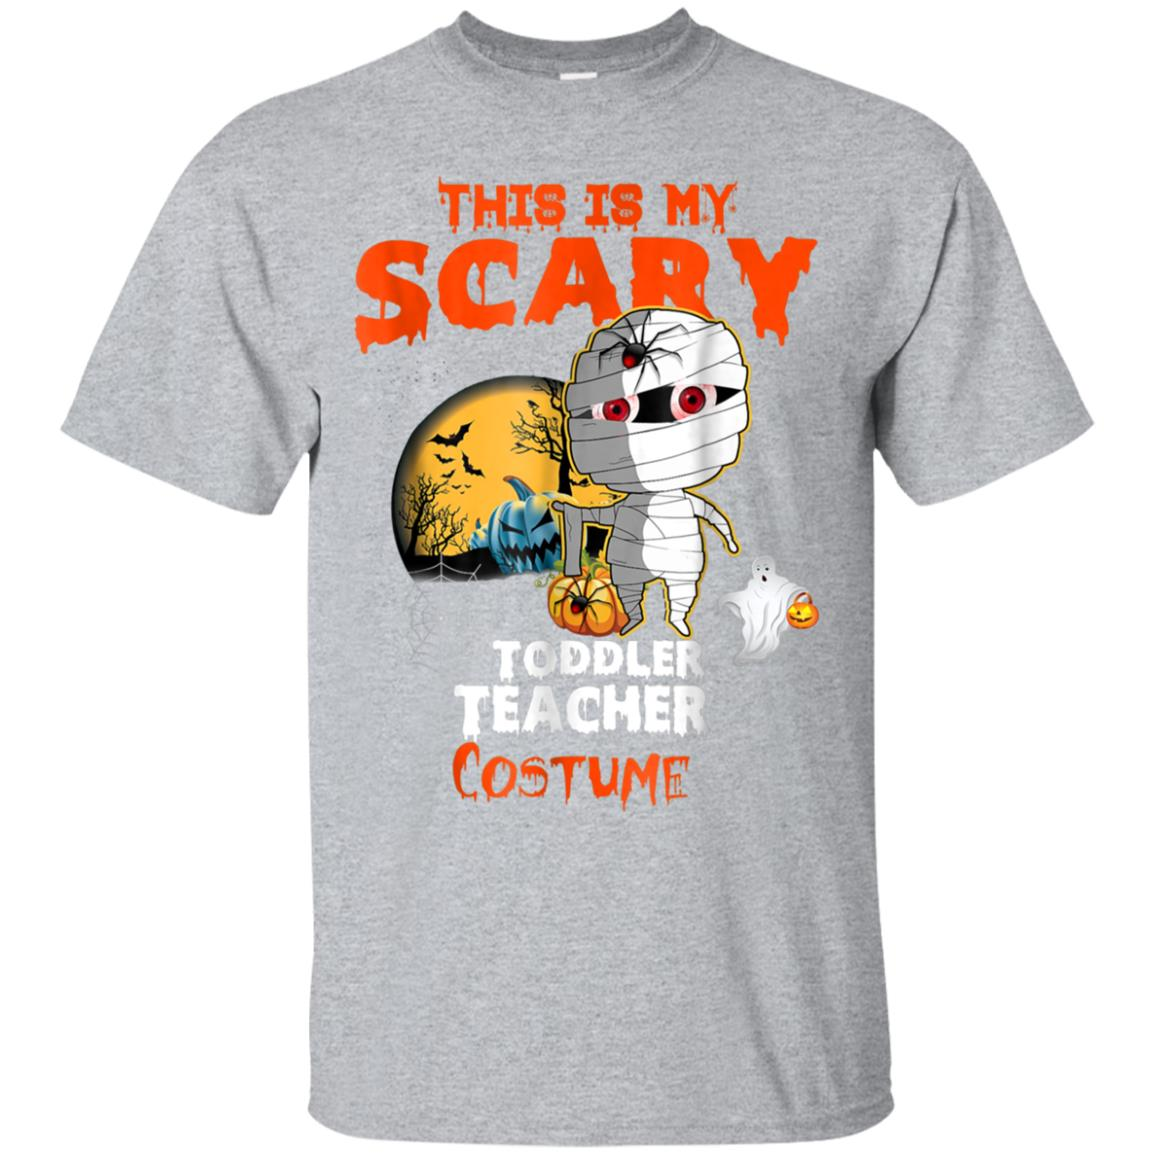 This Is My Scary Toddler Teacher Costume T-Shirt 99promocode